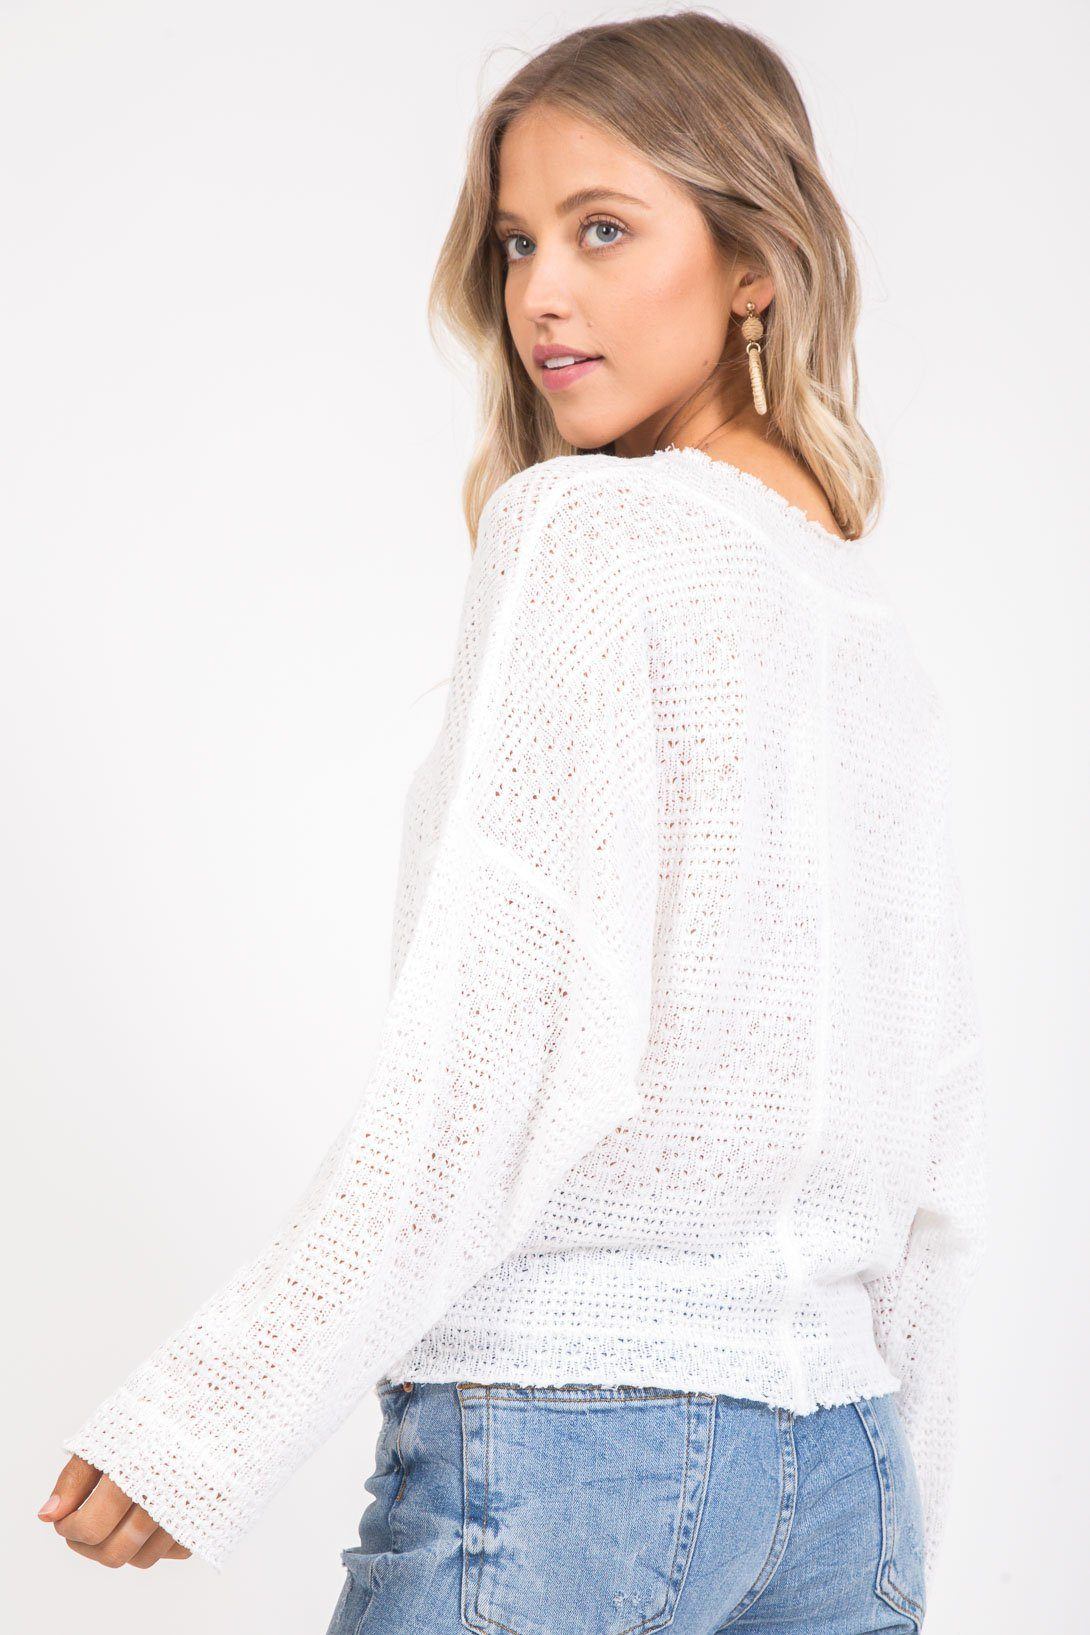 I Can Be Needy Lightweight Sweater tops Loveriche